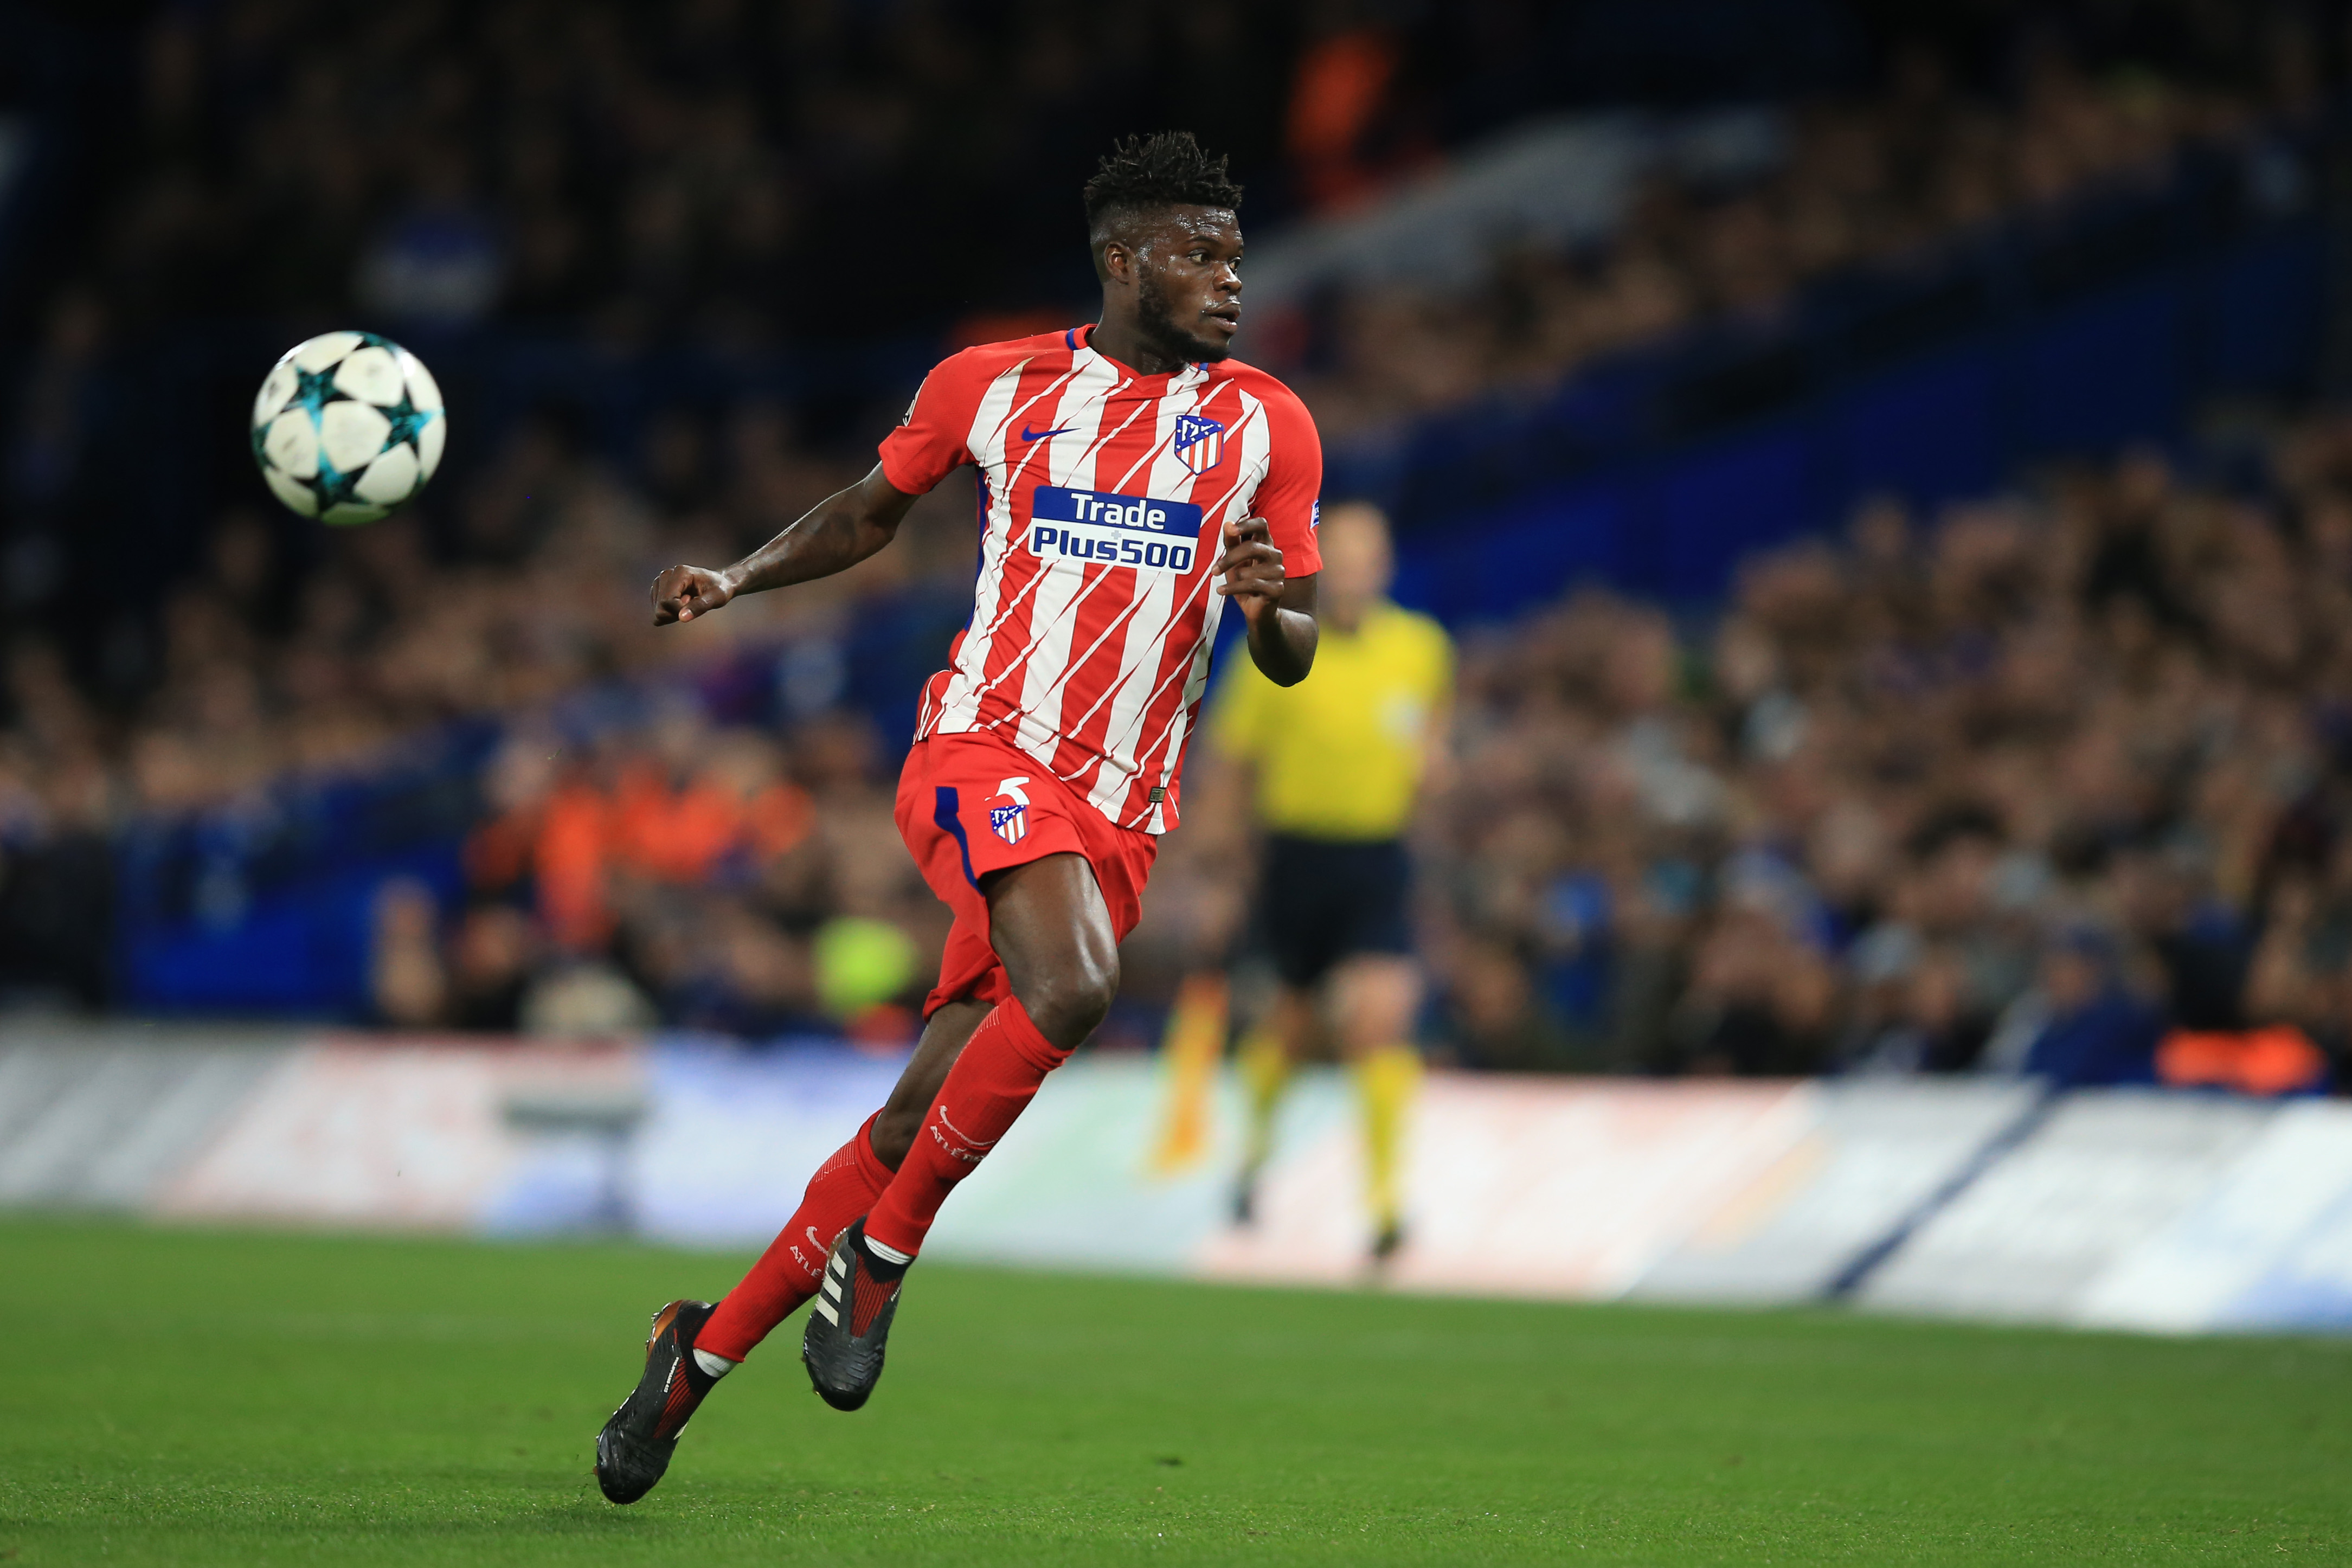 Arsenal sign Partey in £45m deadline day deal from Atletico Madrid